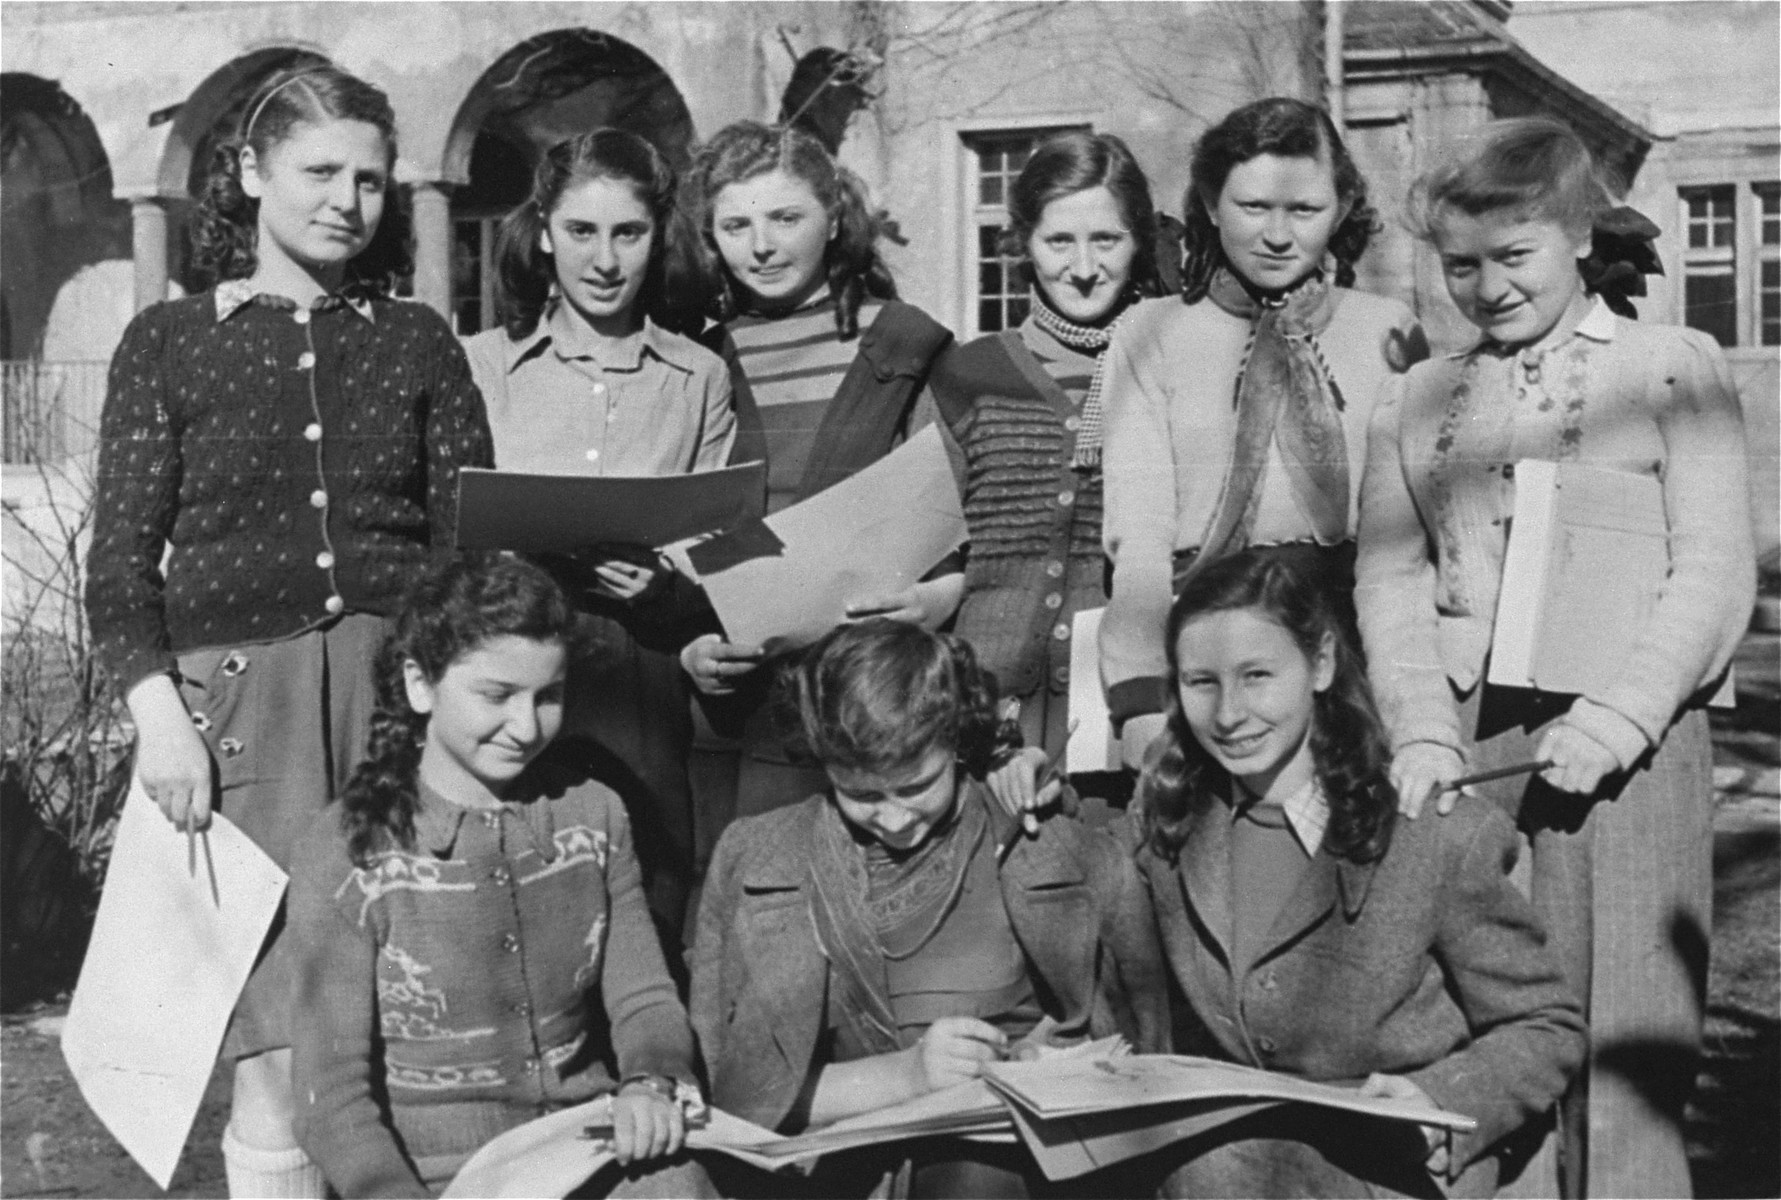 Group portrait of Jewish DP girls attending the Moehlstrasse school in Munich.  Pictured standing from left to right, are: Judy Hechtkopf, Bronia Zwass, Rozia (Shoshana) Grossman, unknown, Rivka Dzijloszycka.  Seated in the middle is Gunia Herring.